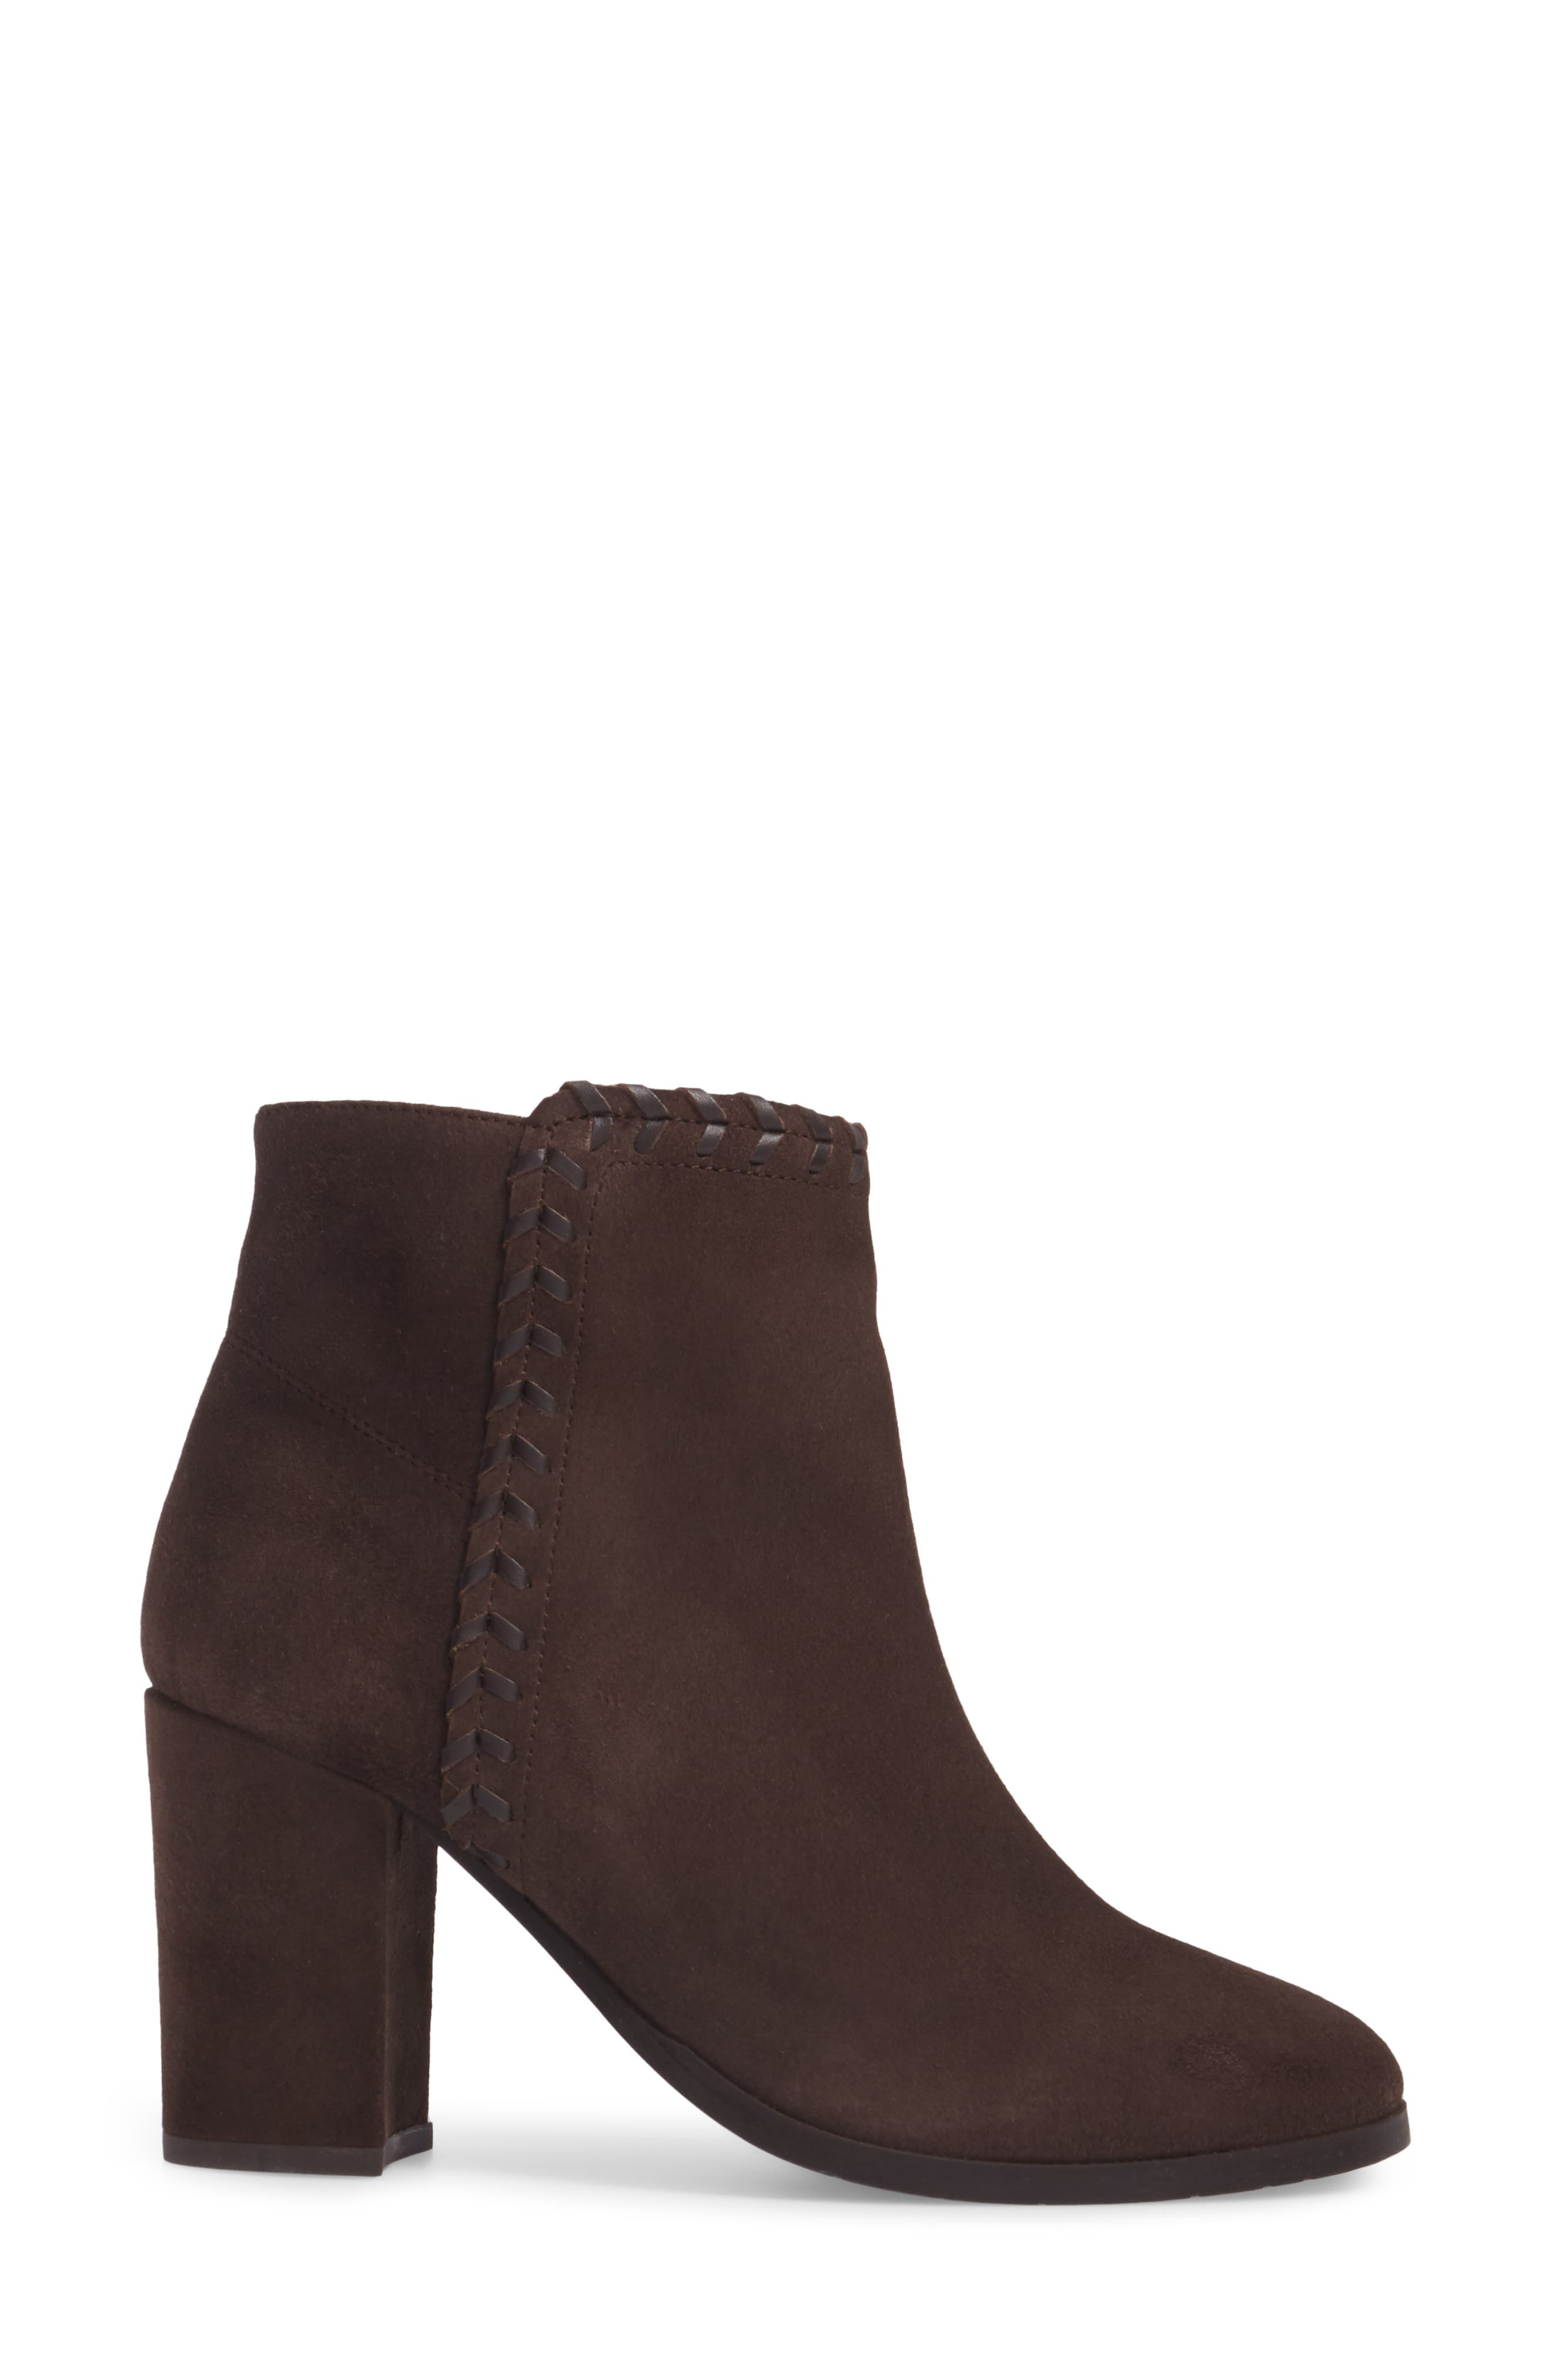 Heavenly Bootie,                             Alternate thumbnail 3, color,                             Taupe Suede